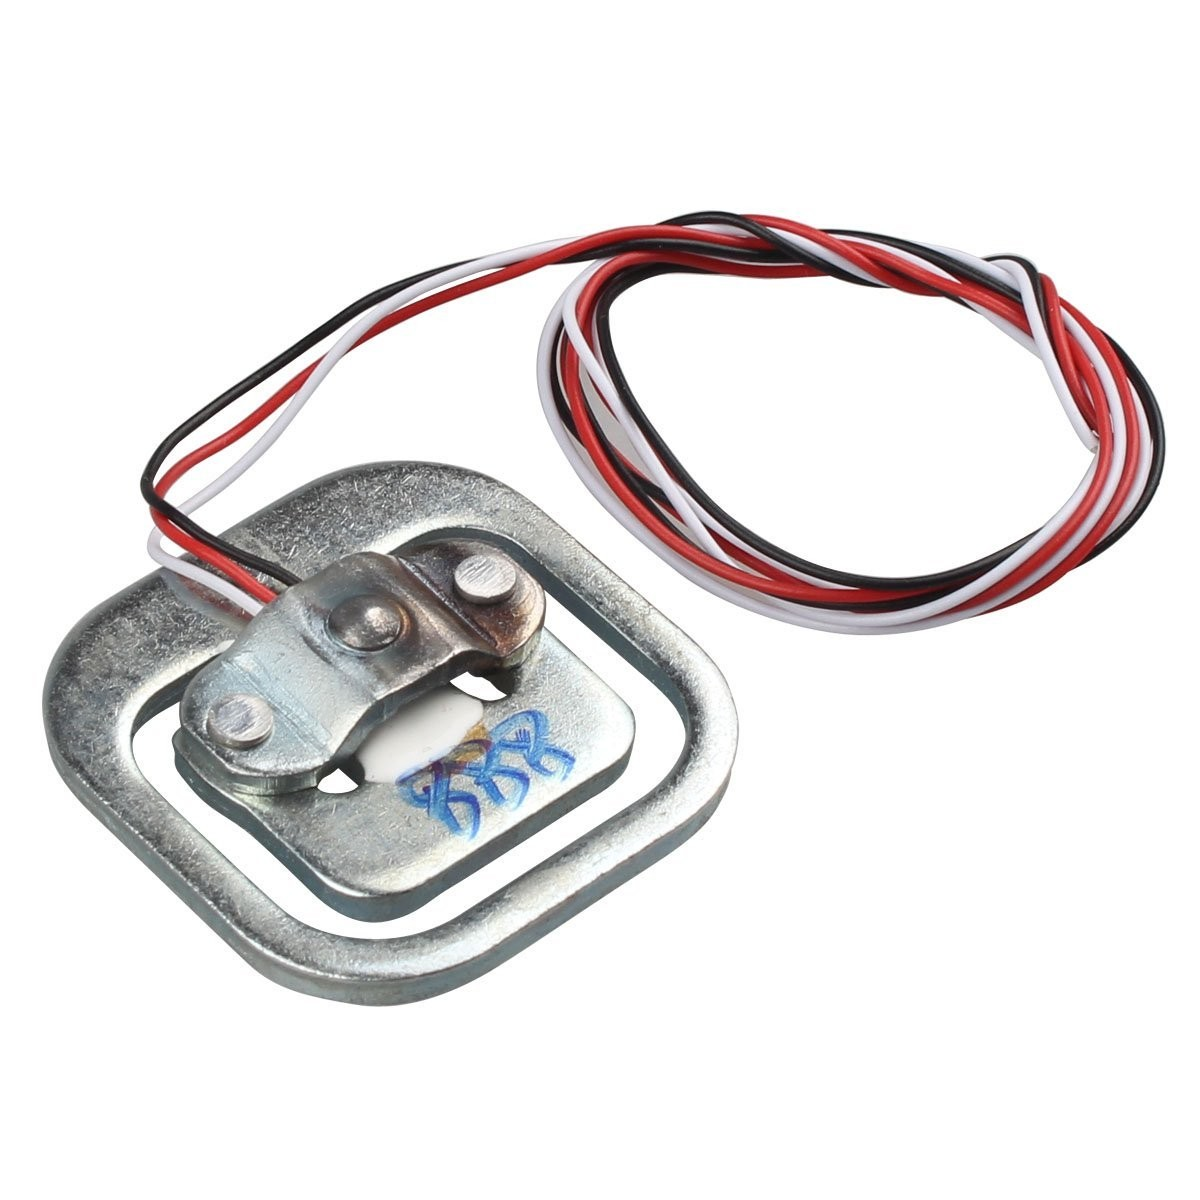 Load Cell Seeed Studio Accessories Weight Sensor 1 piece 0-50kg